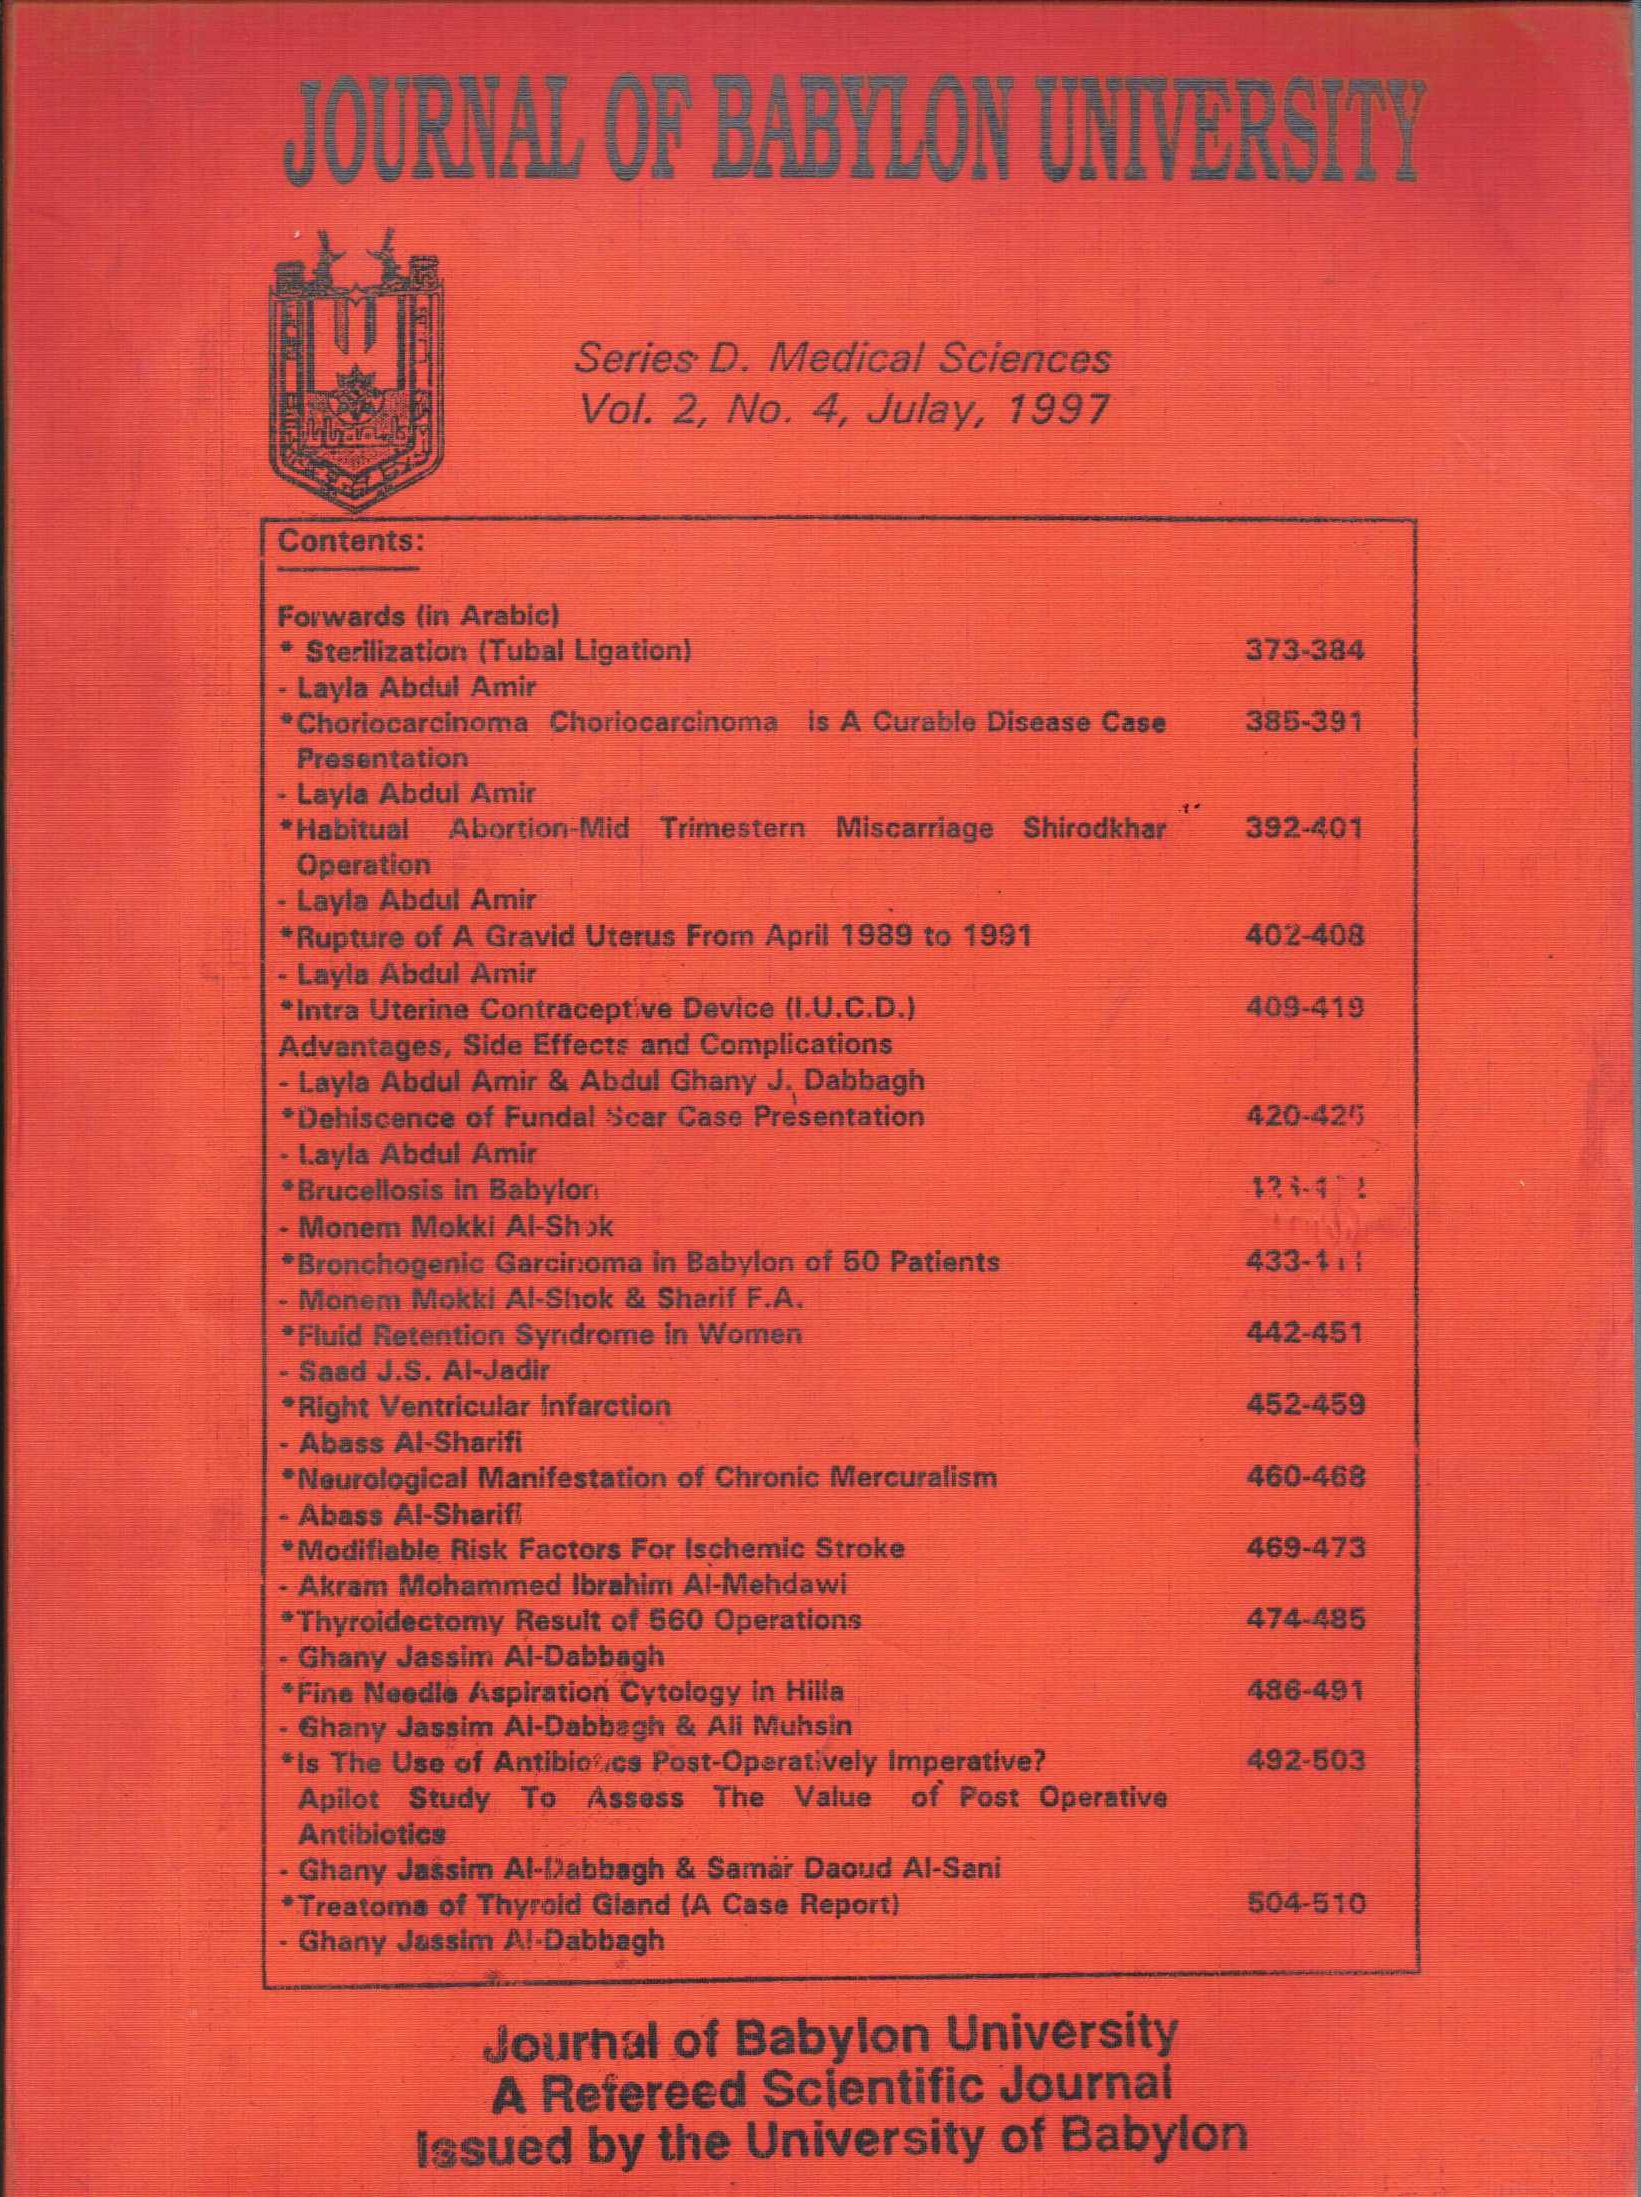 Medical Sciences Vol 2 No 4 (1997)